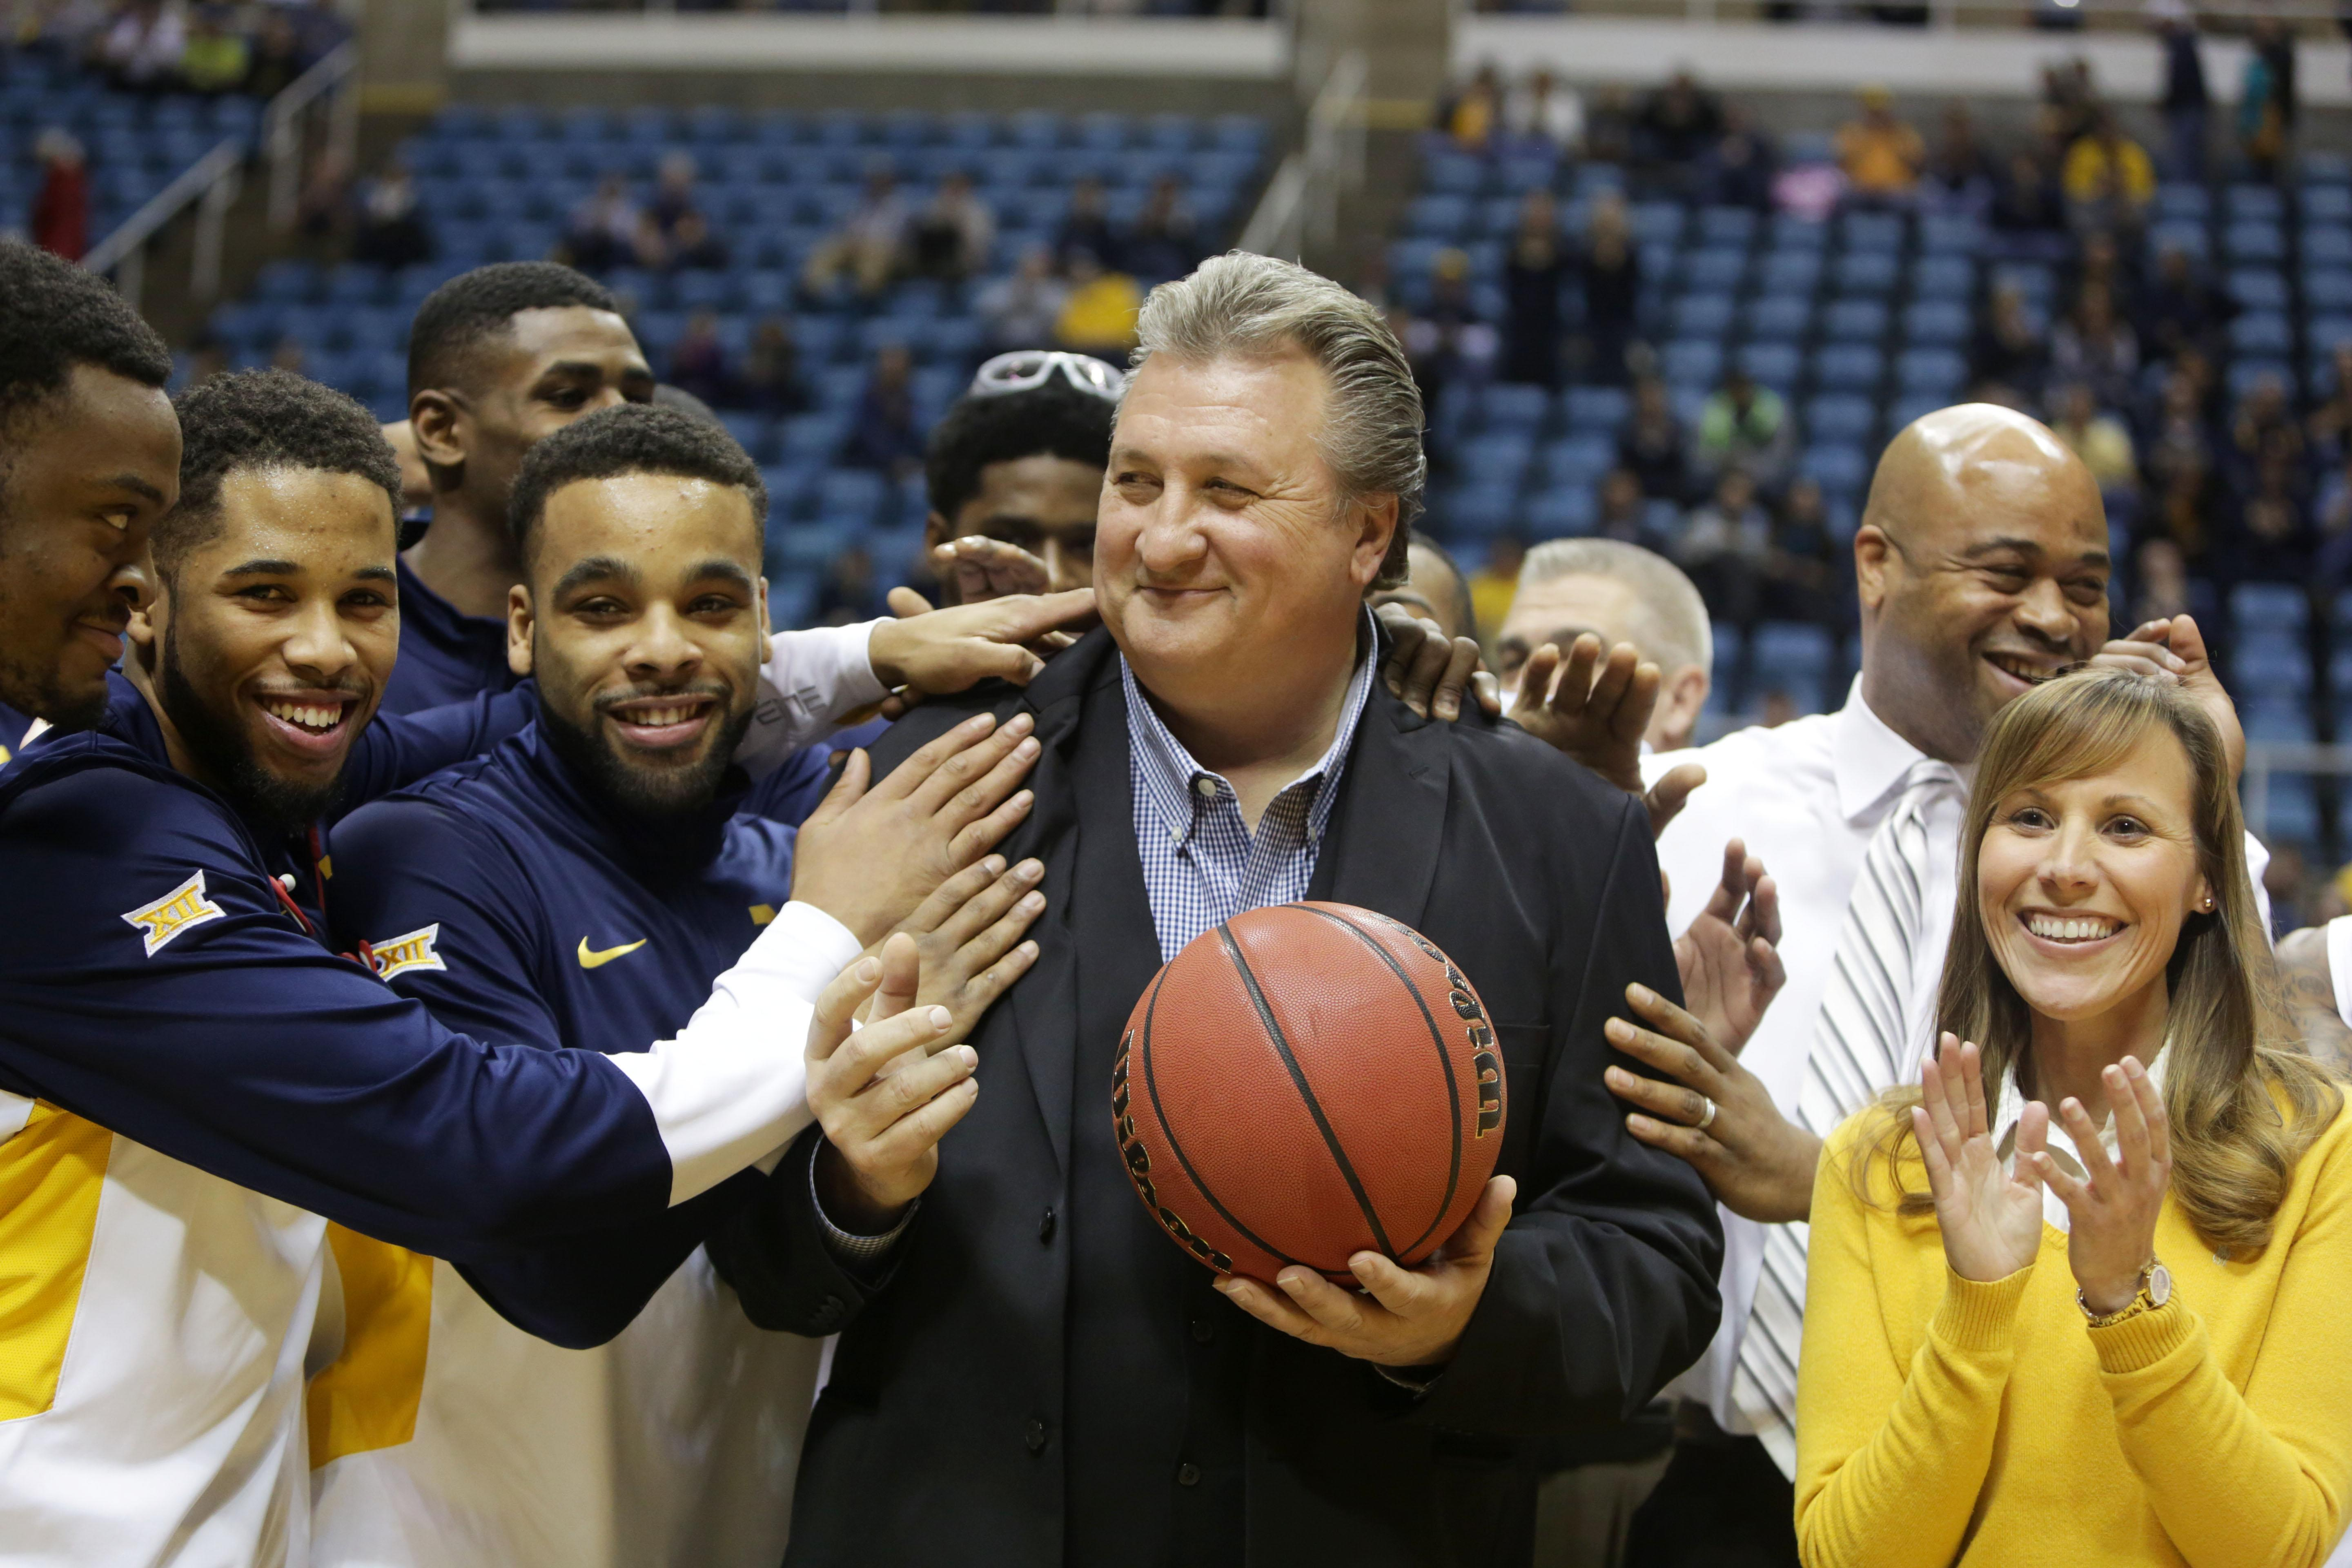 Staten leads No. 18 West Virginia over Wofford